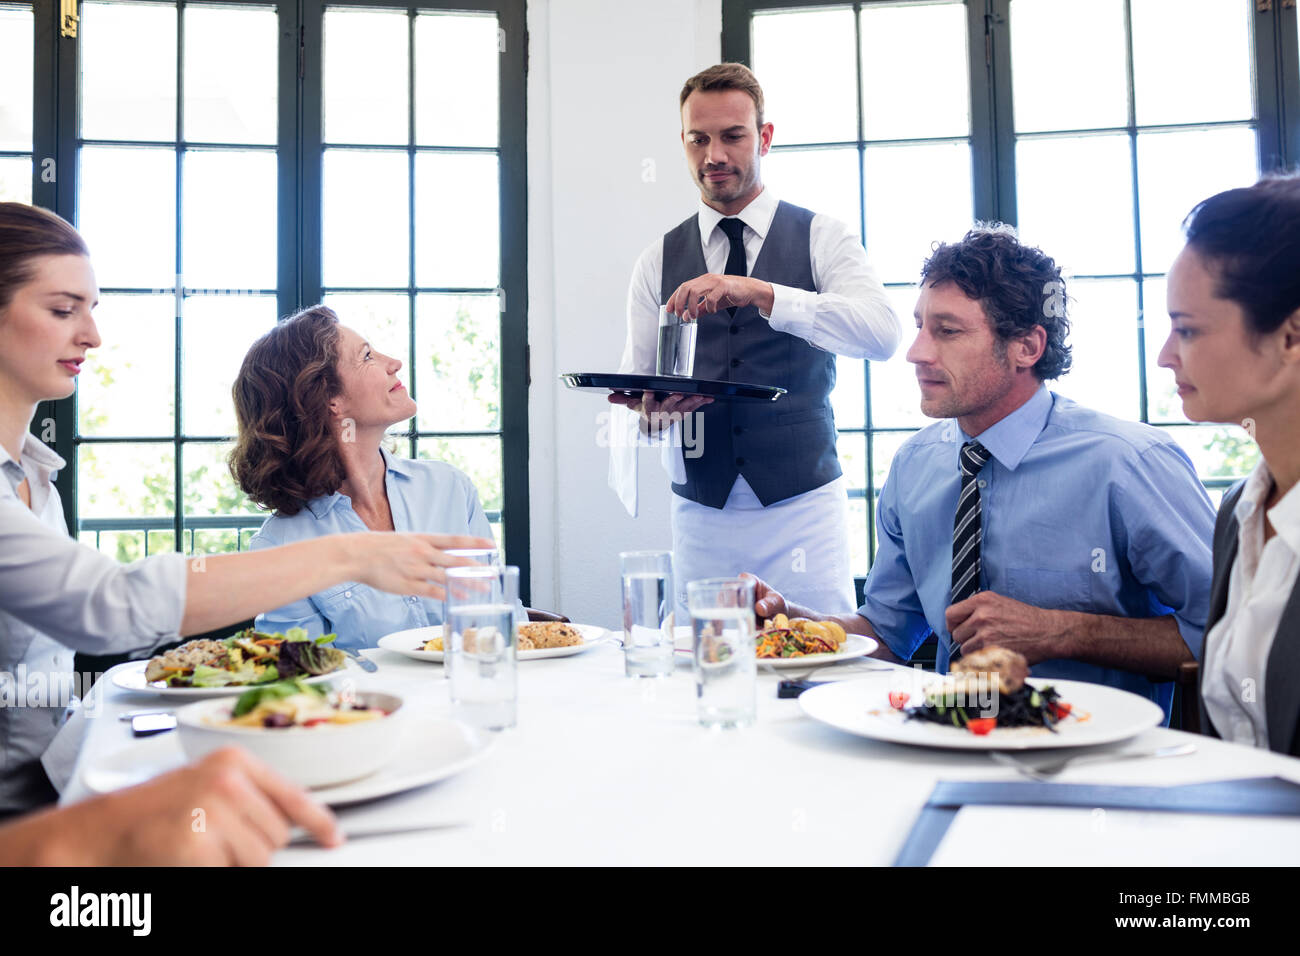 Waiter Serving Food Restaurant High Resolution Stock Photography And Images Alamy